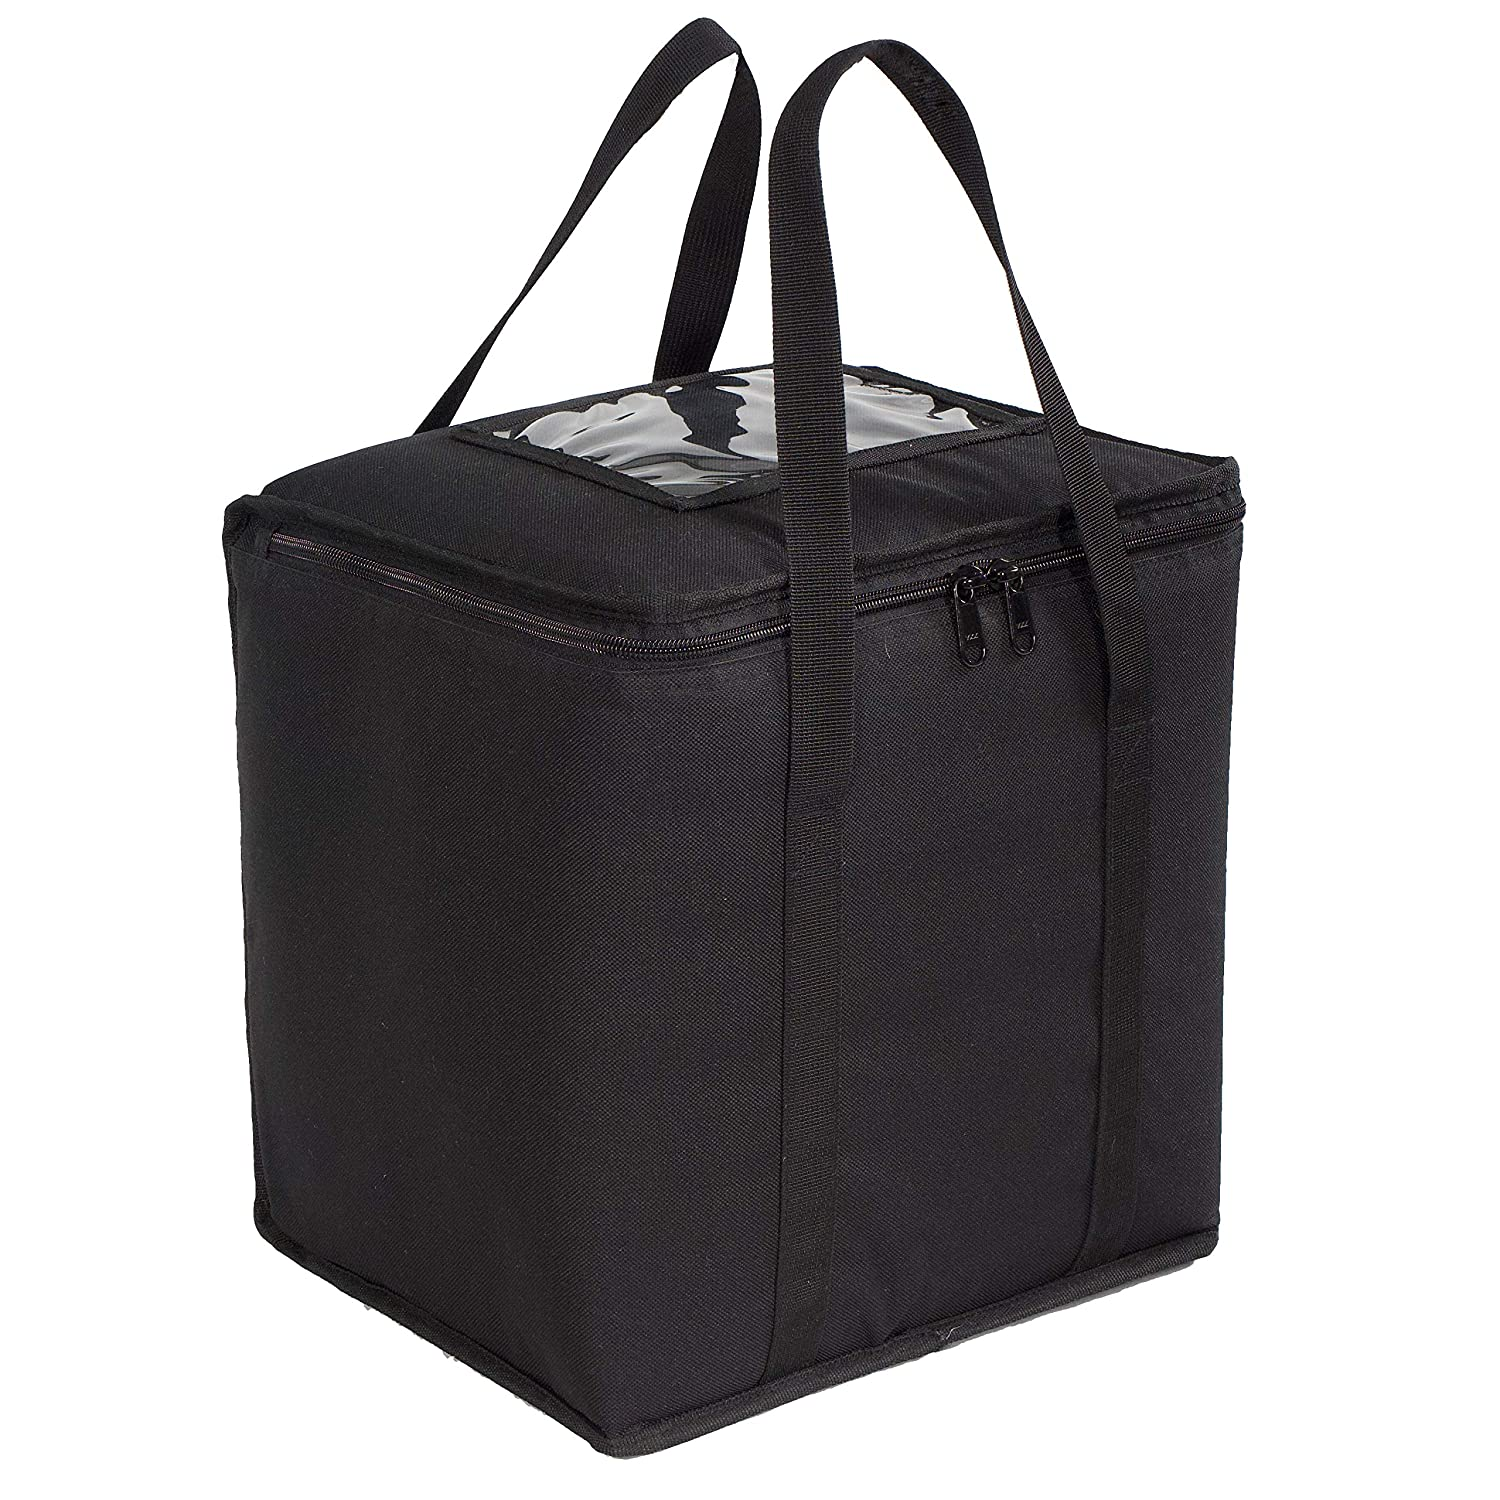 Commercial Quality Food Delivery Bag Half-Size 12